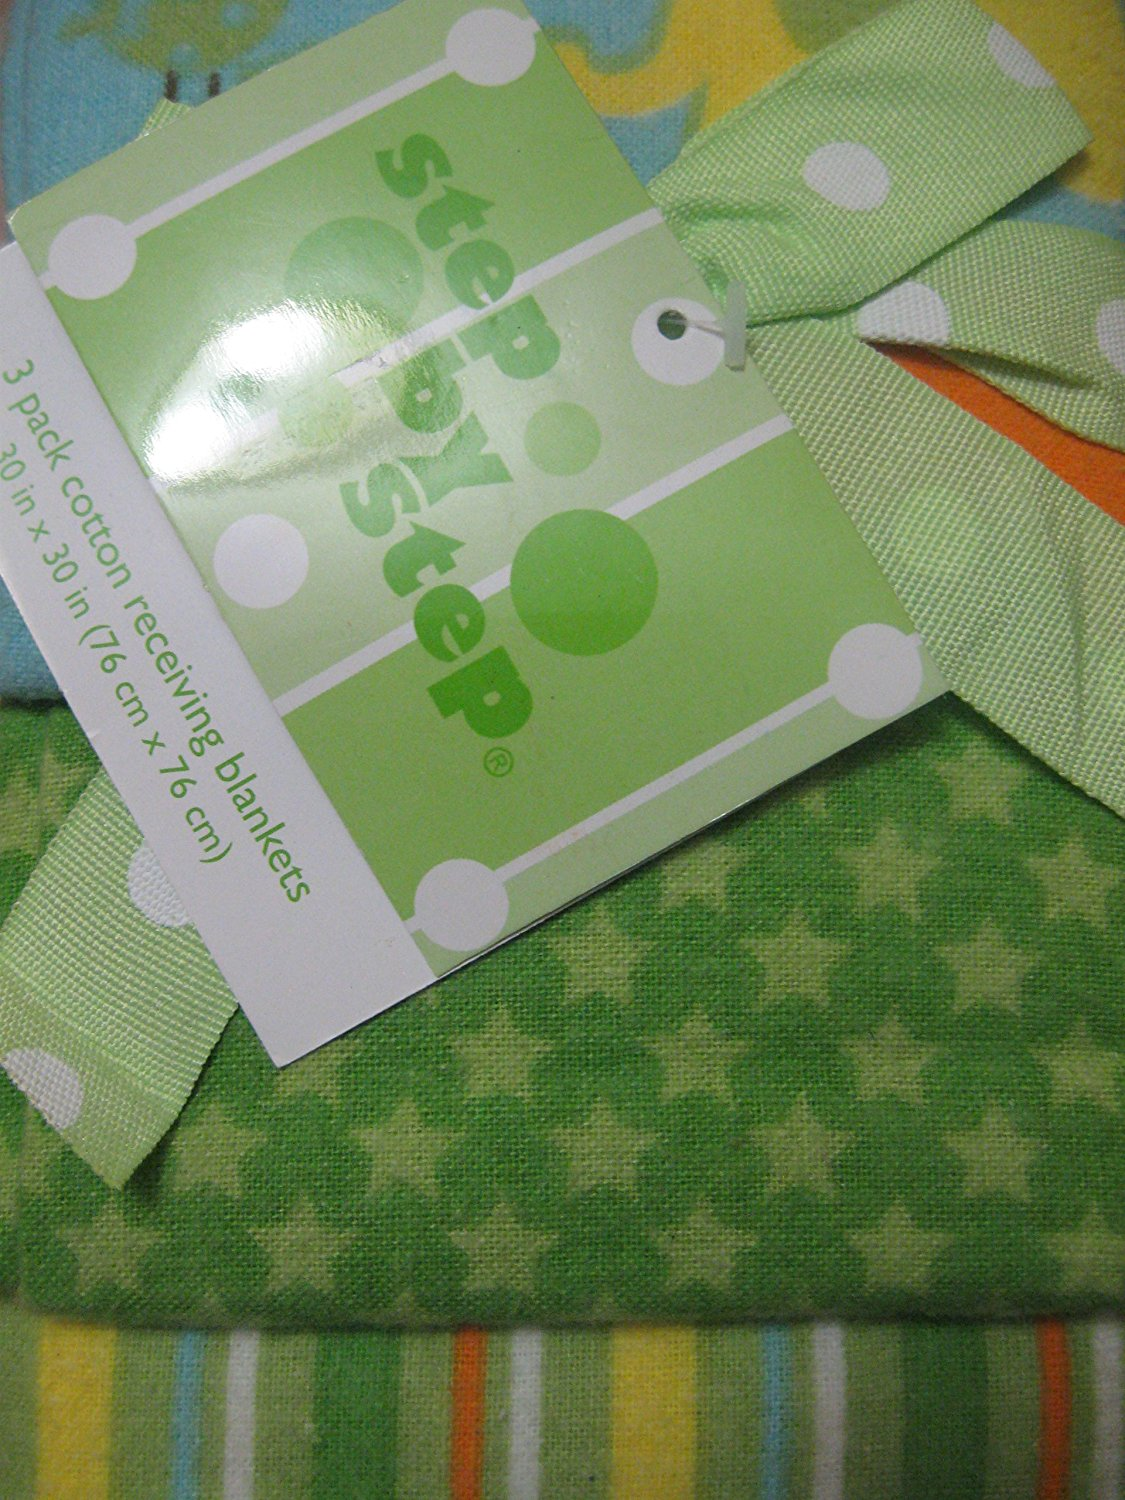 Step By Step 3 Pack Receiving Blankets Stars, Stripes and Safari Themes by Pem-America%2C Inc.